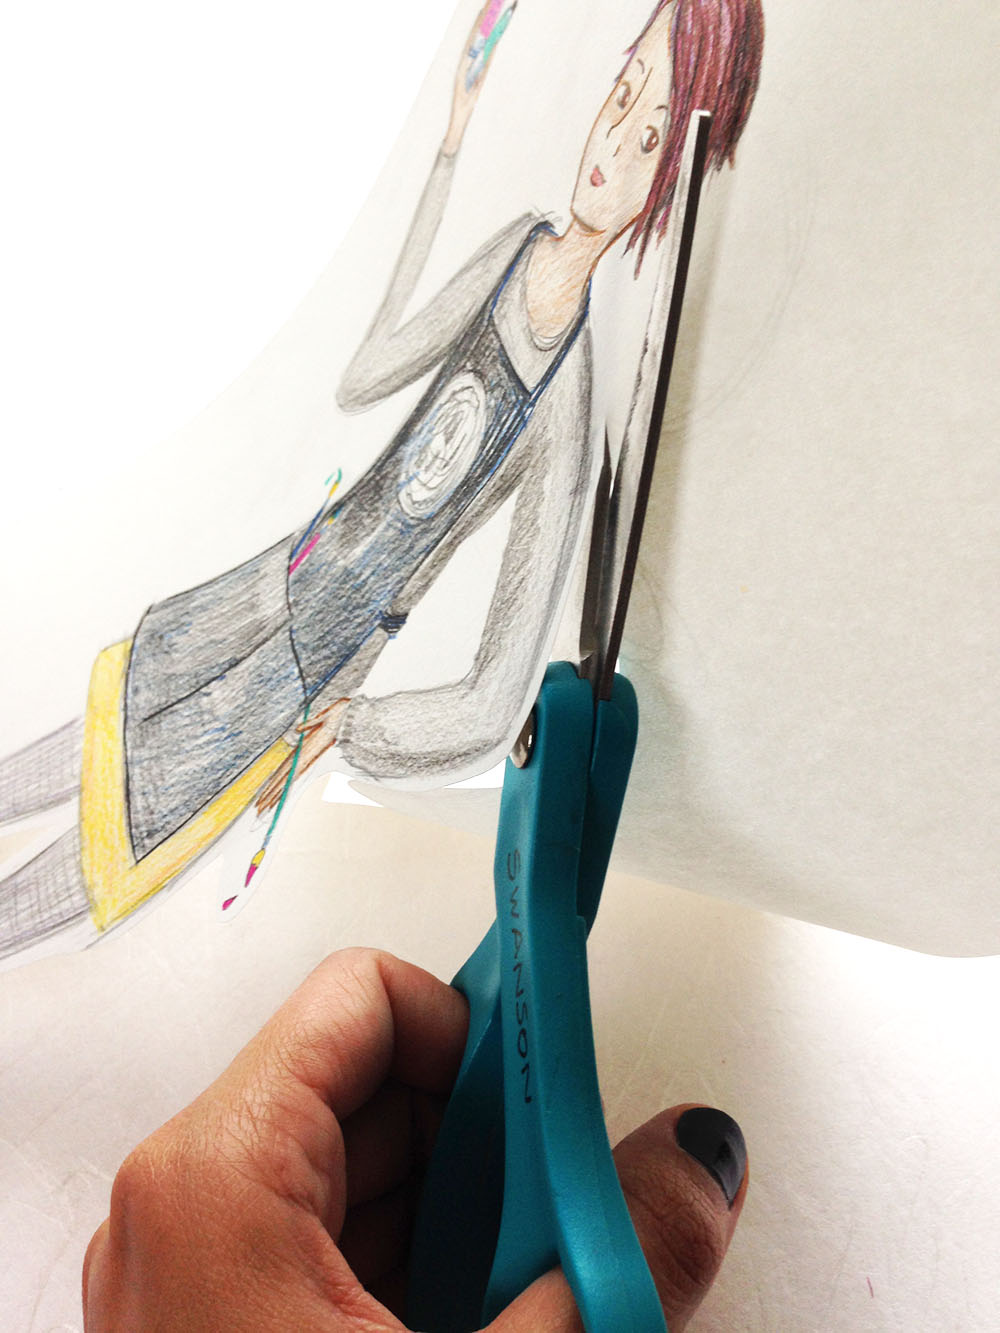 How to draw a back-to-school self portrait step by step, with free educator resources